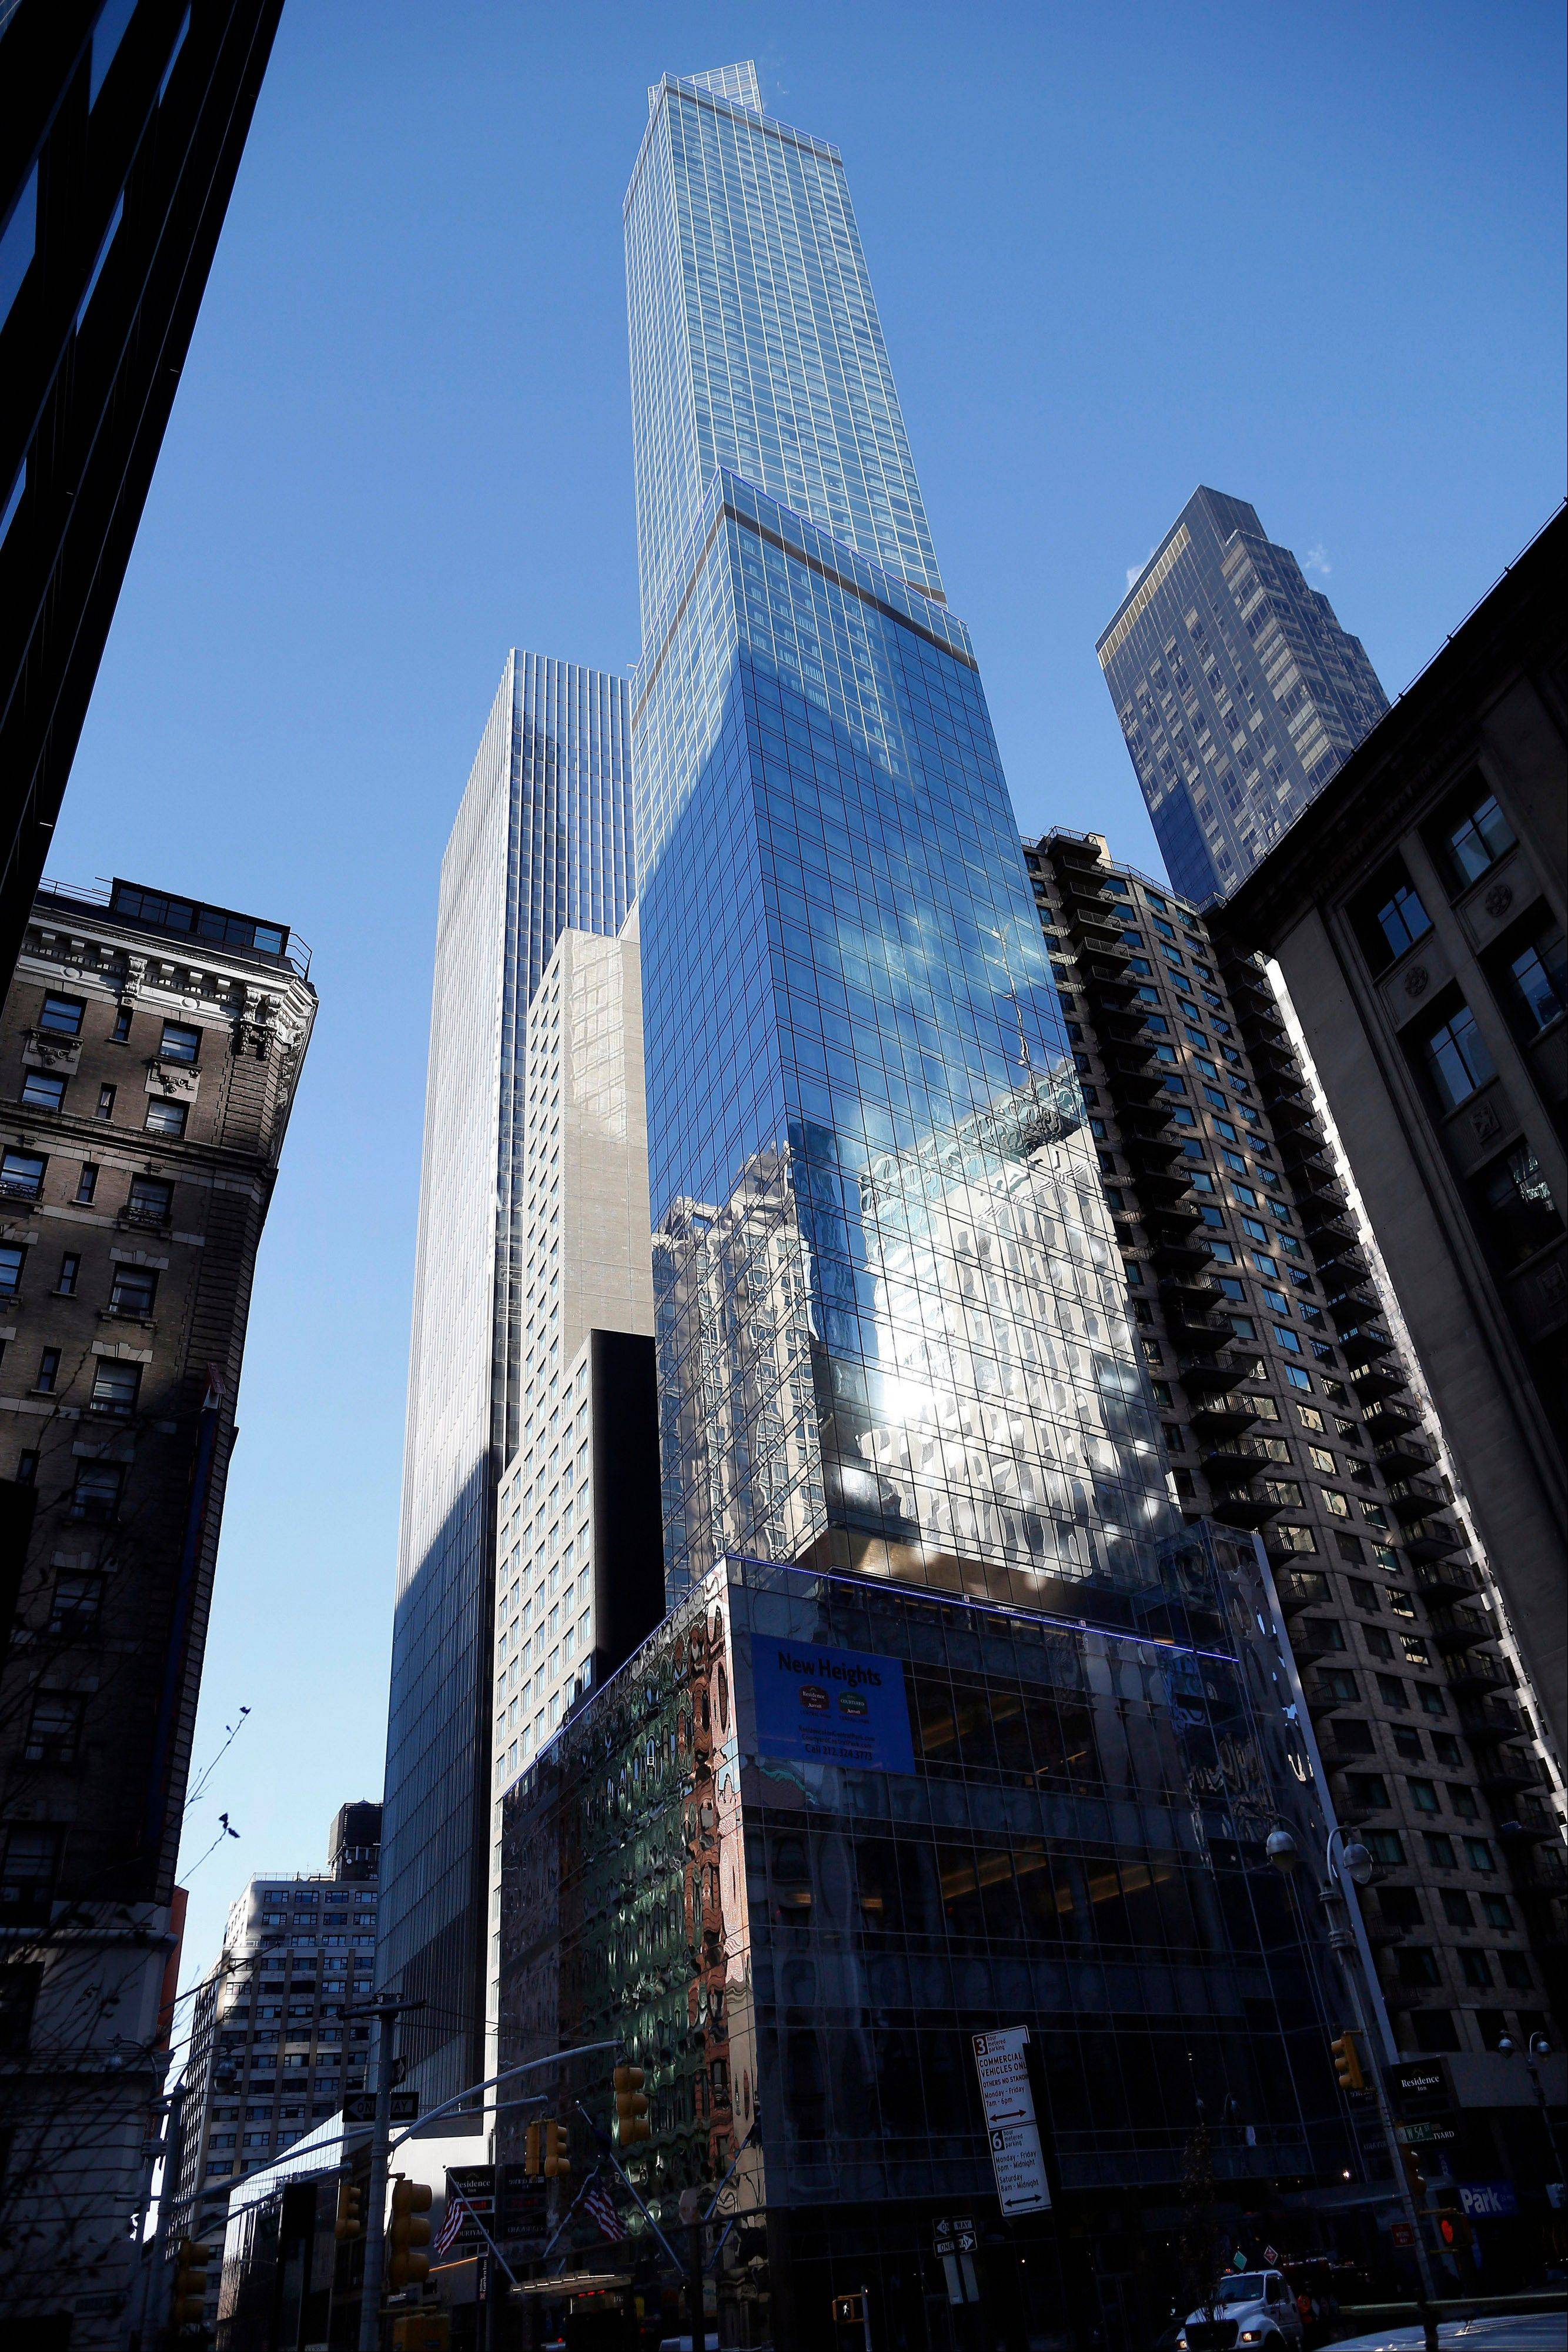 The new Courtyard-Residence Inn Central Park in New York is claiming to be the tallest single-use hotel building in North America.